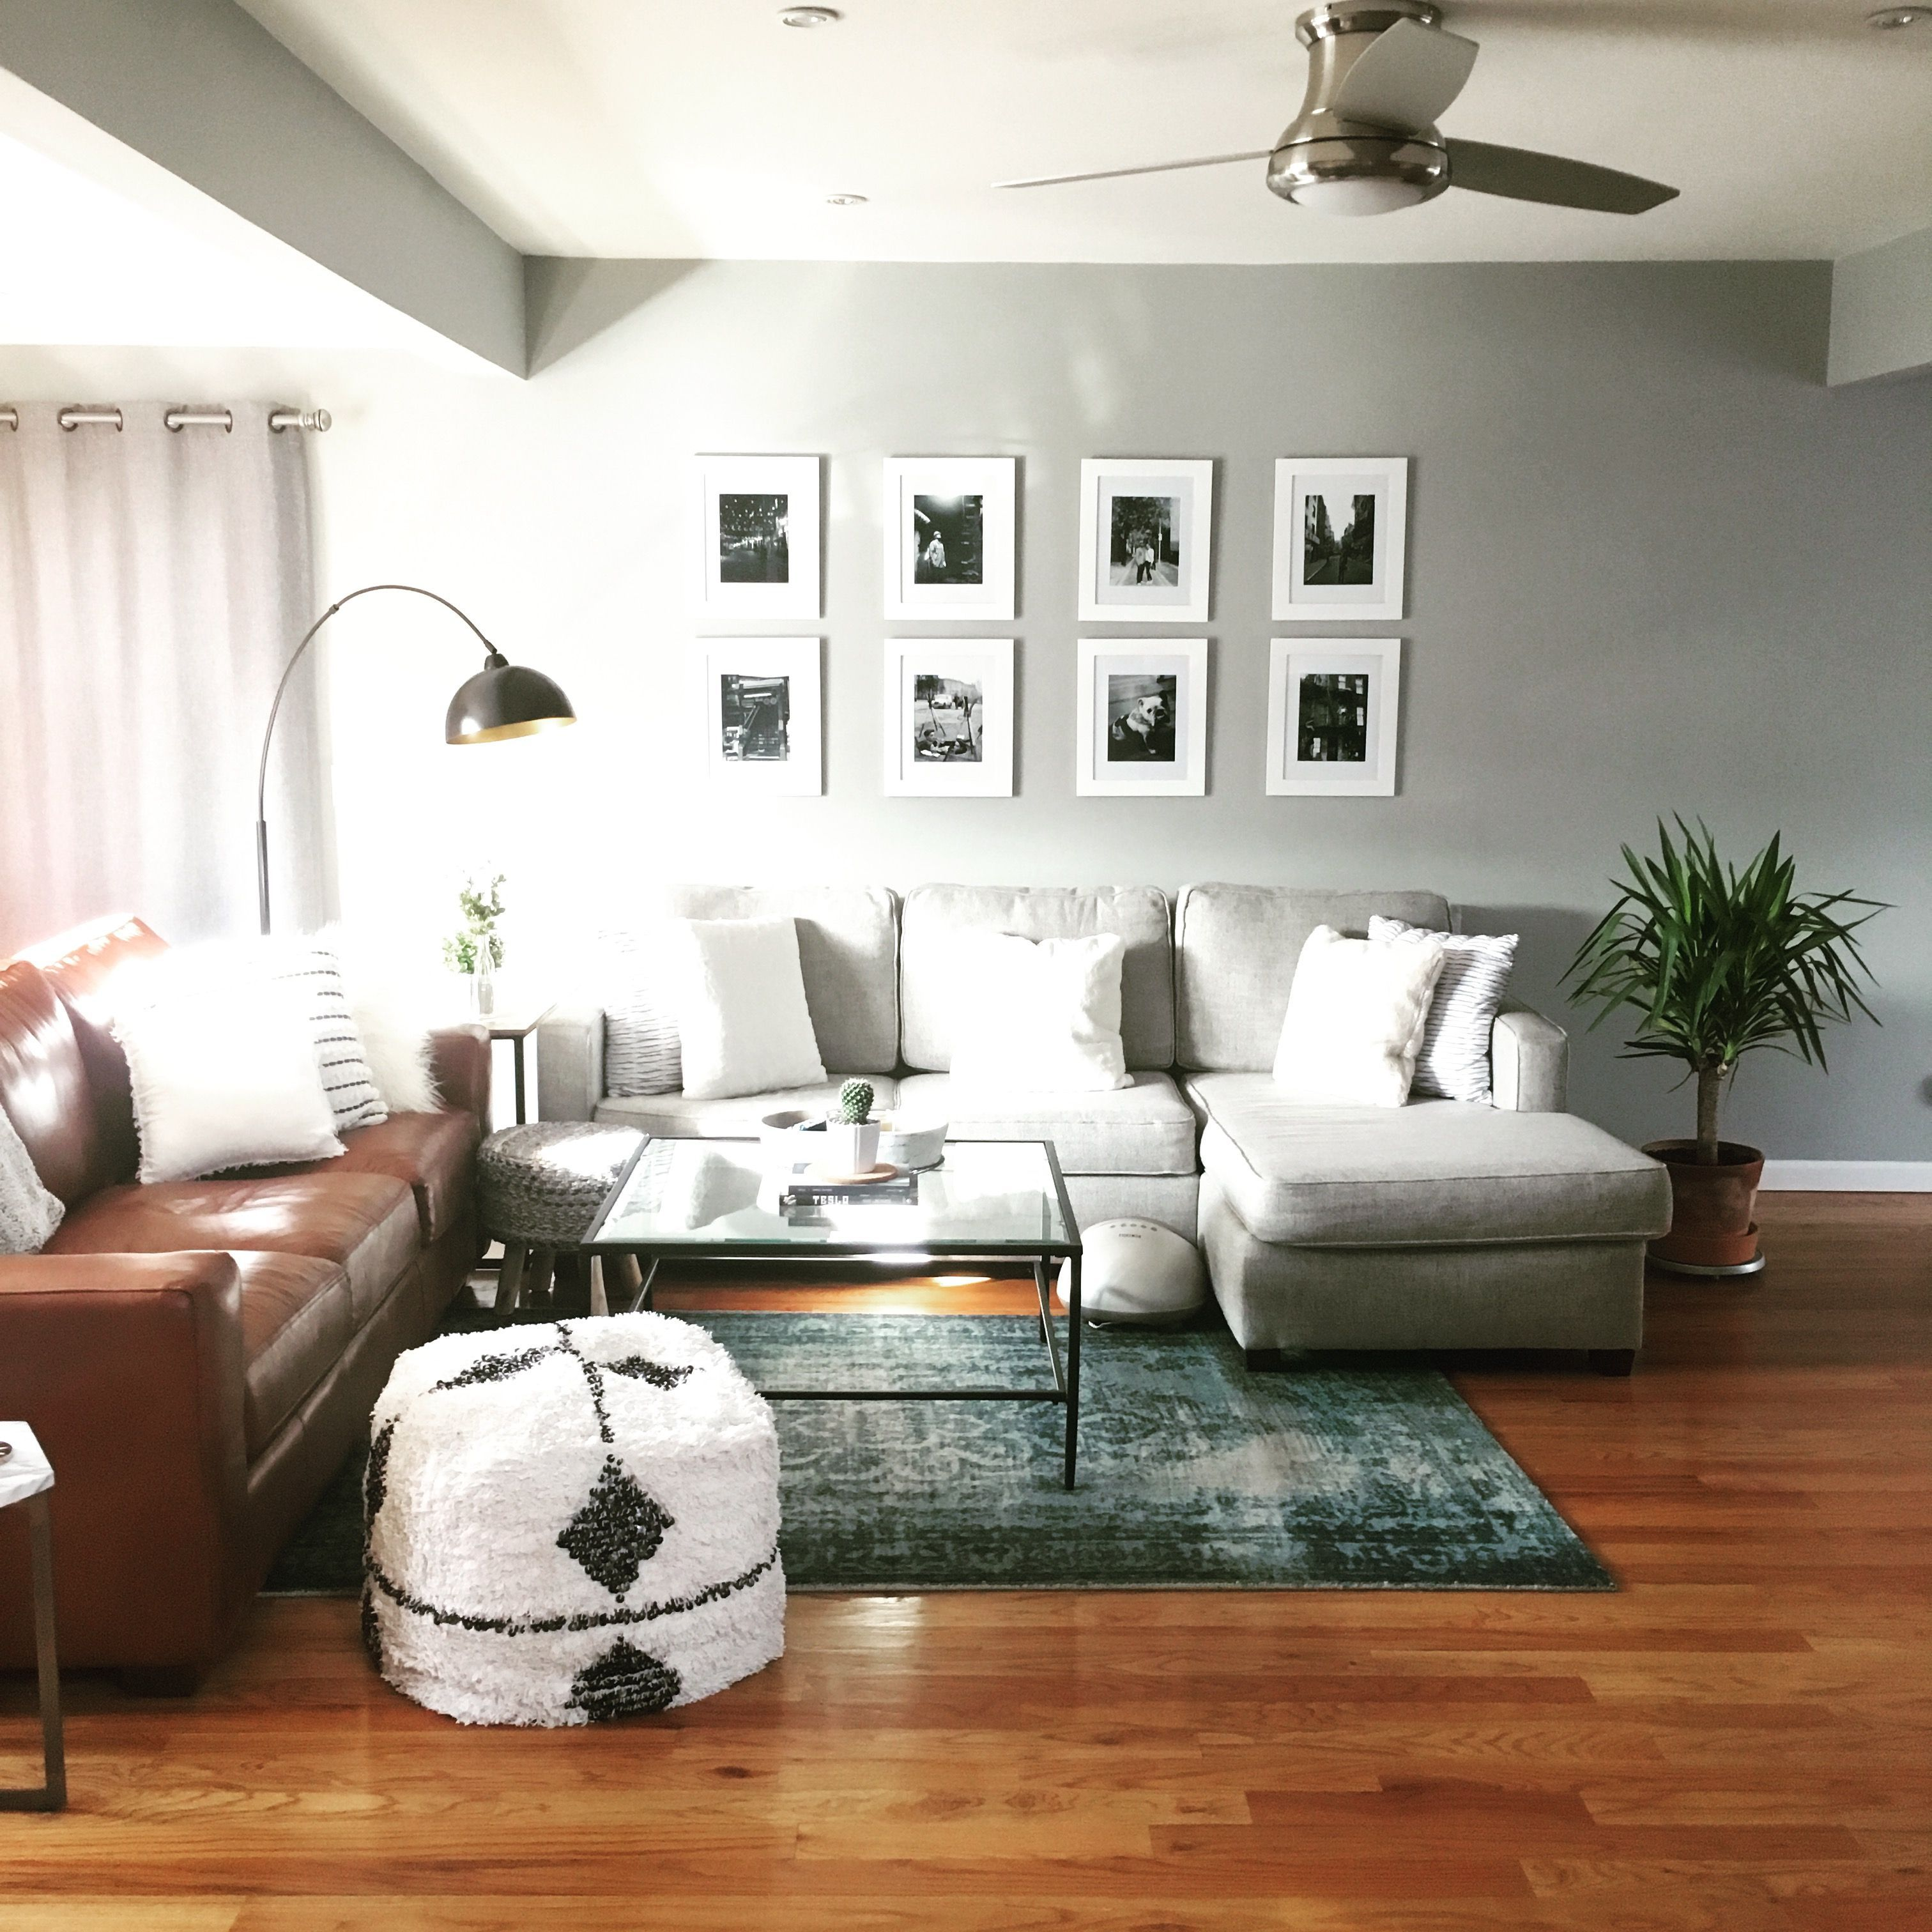 Mid century modern living room style is born in the period between